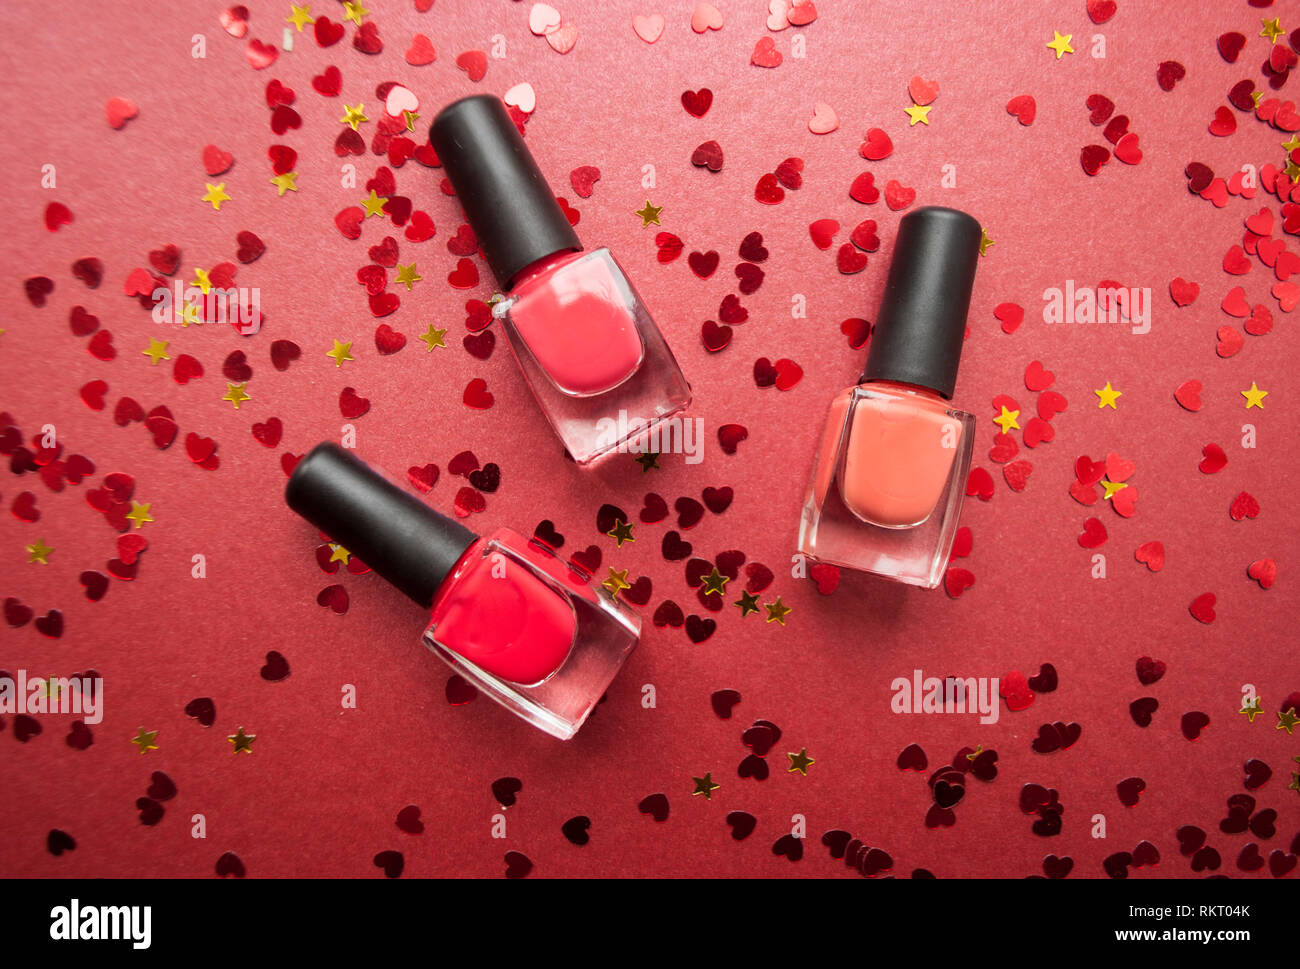 Glitter Nail Polish Stock Photos & Glitter Nail Polish Stock Images ...